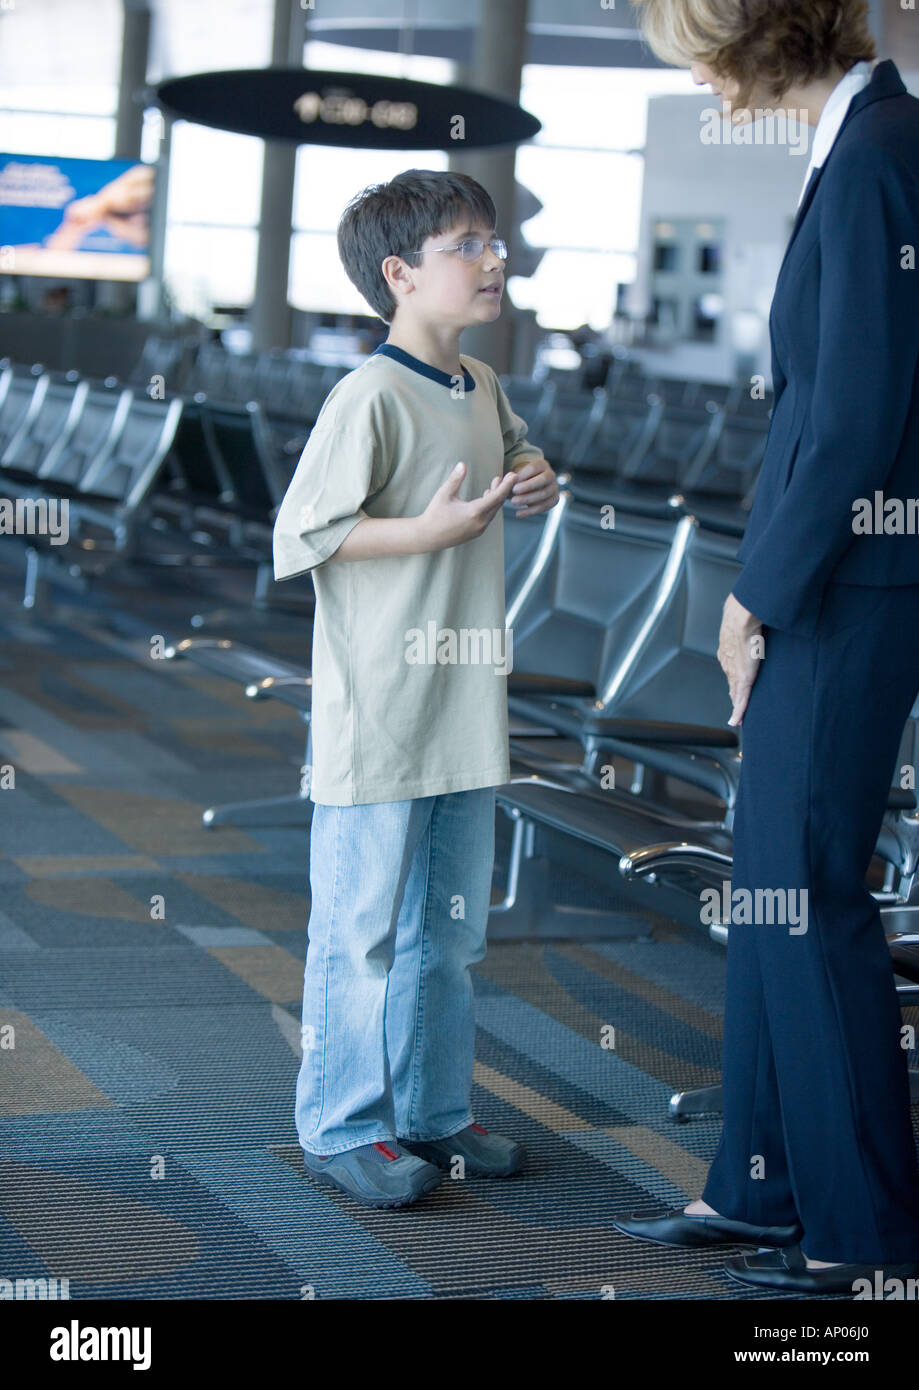 Boy speaking to airline attendant in airport lounge - Stock Image